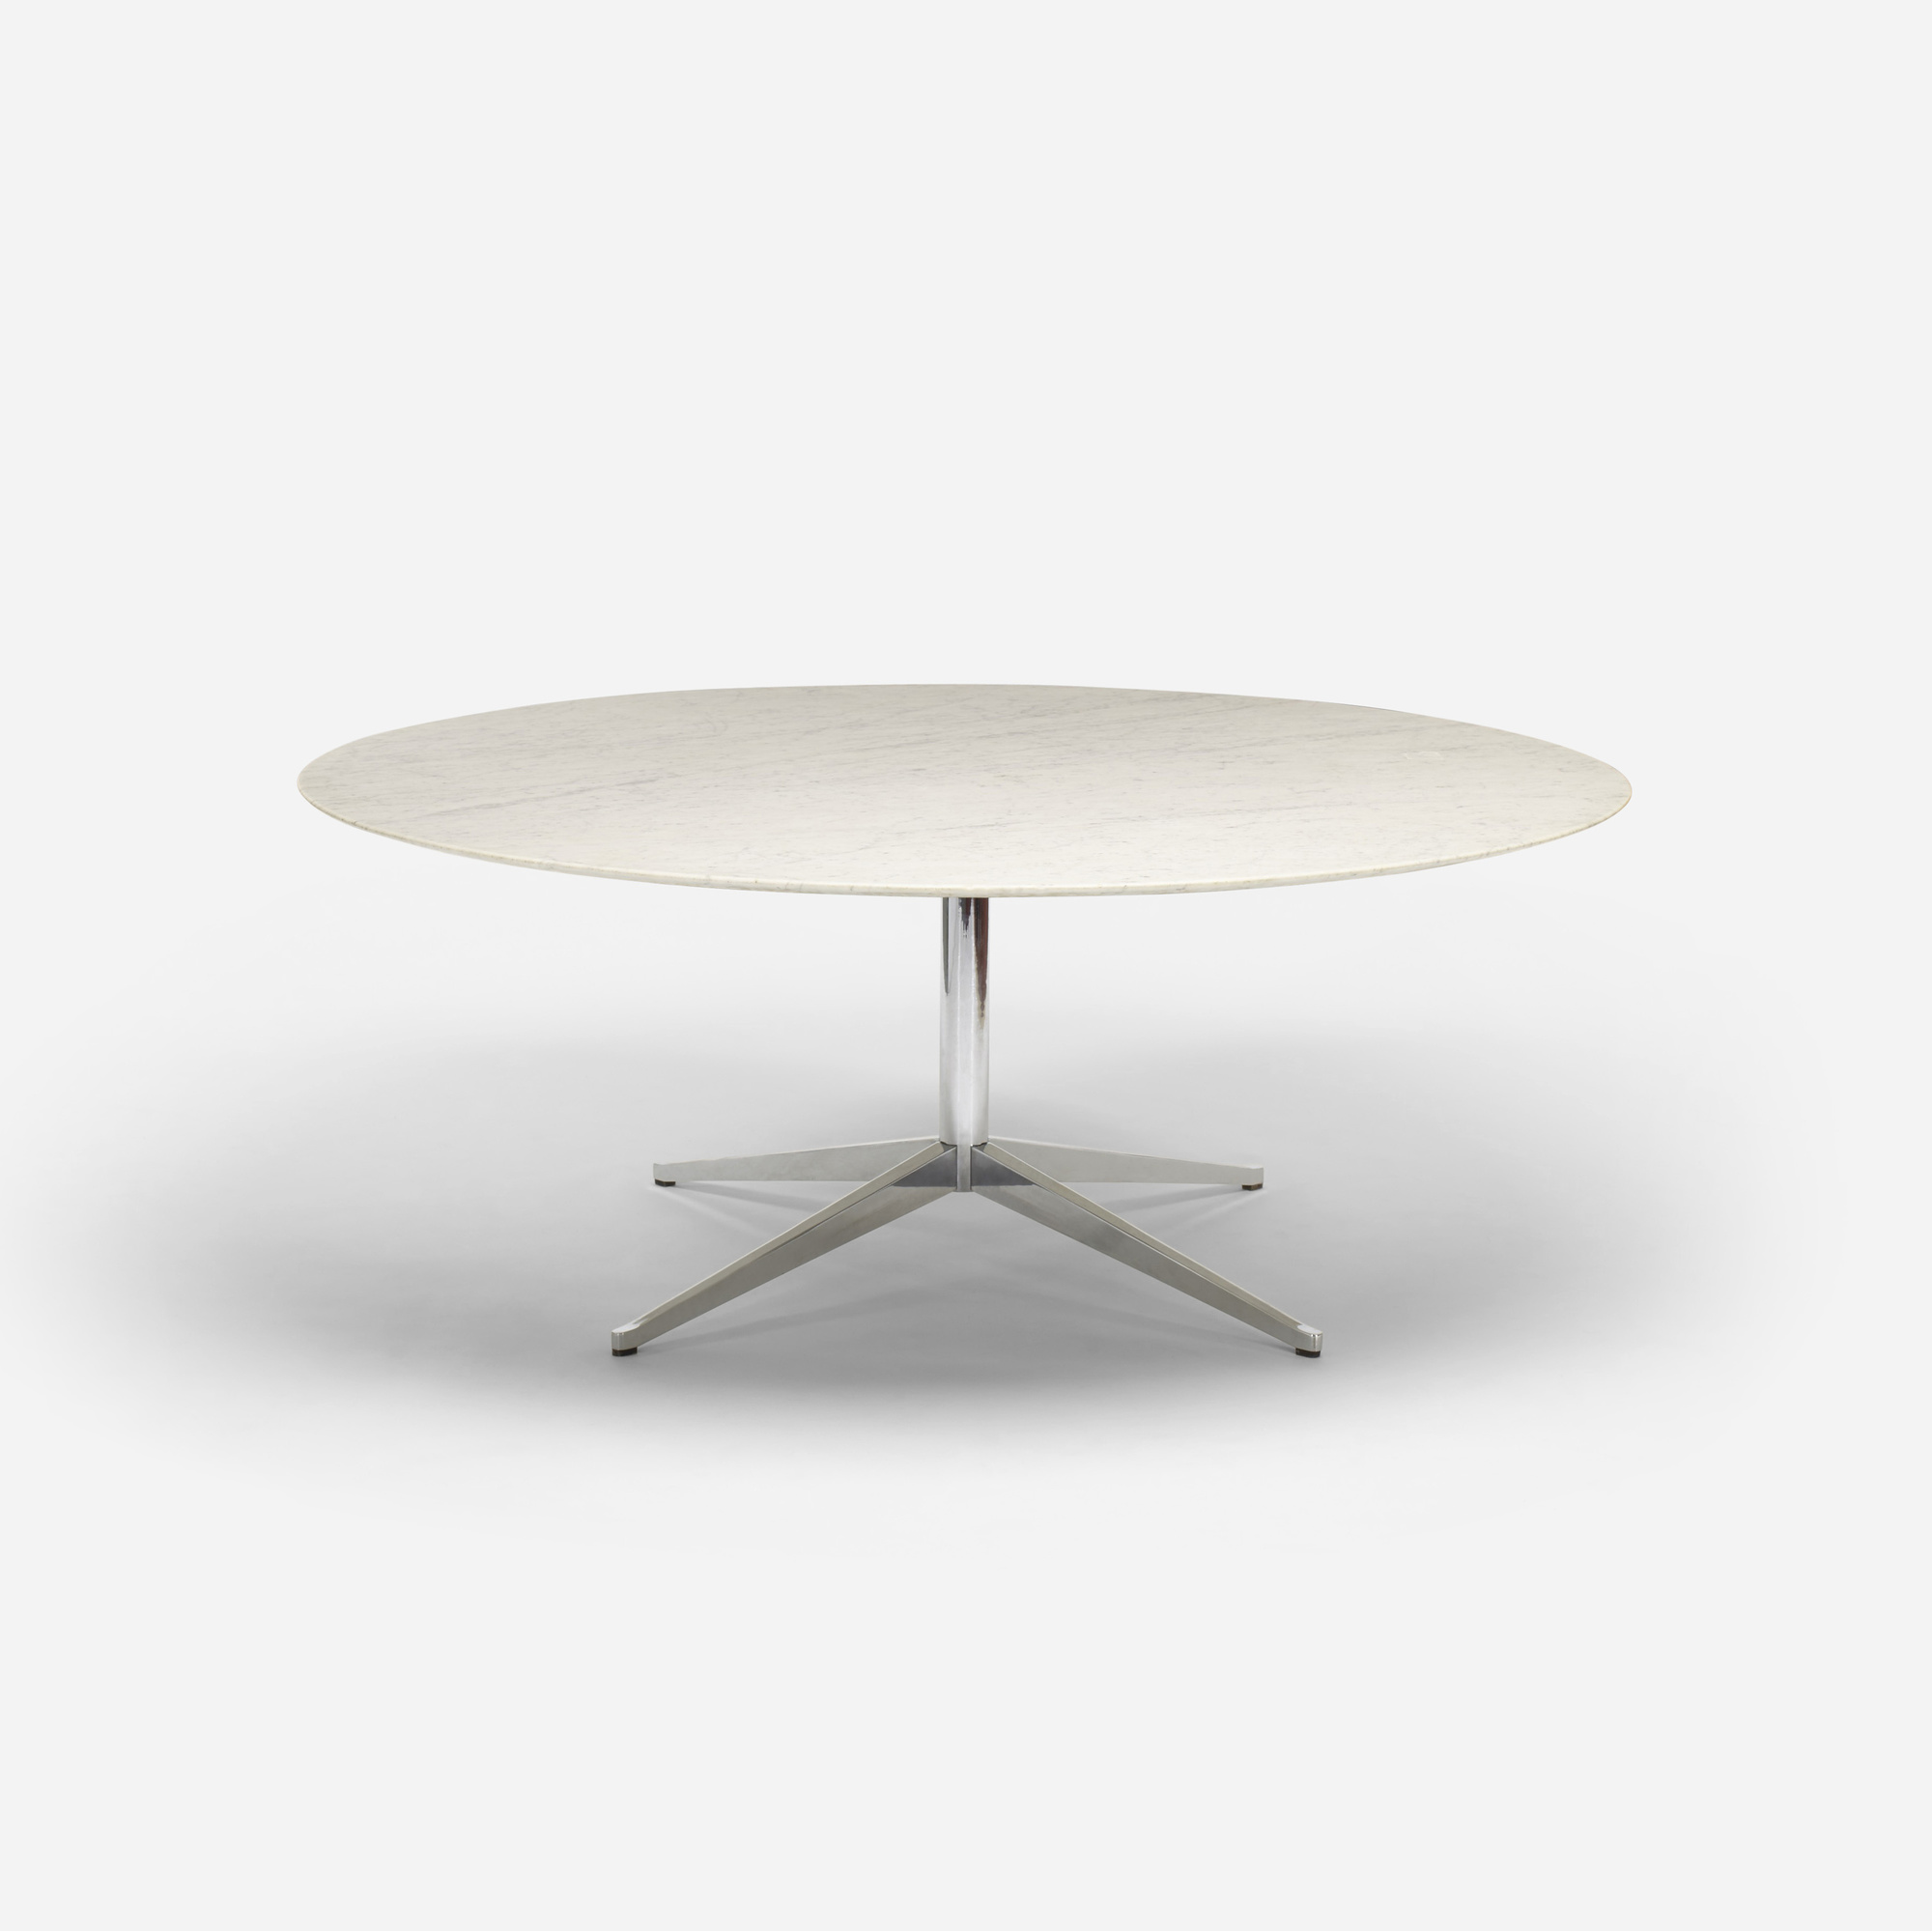 391: Florence Knoll / dining table (1 of 2)